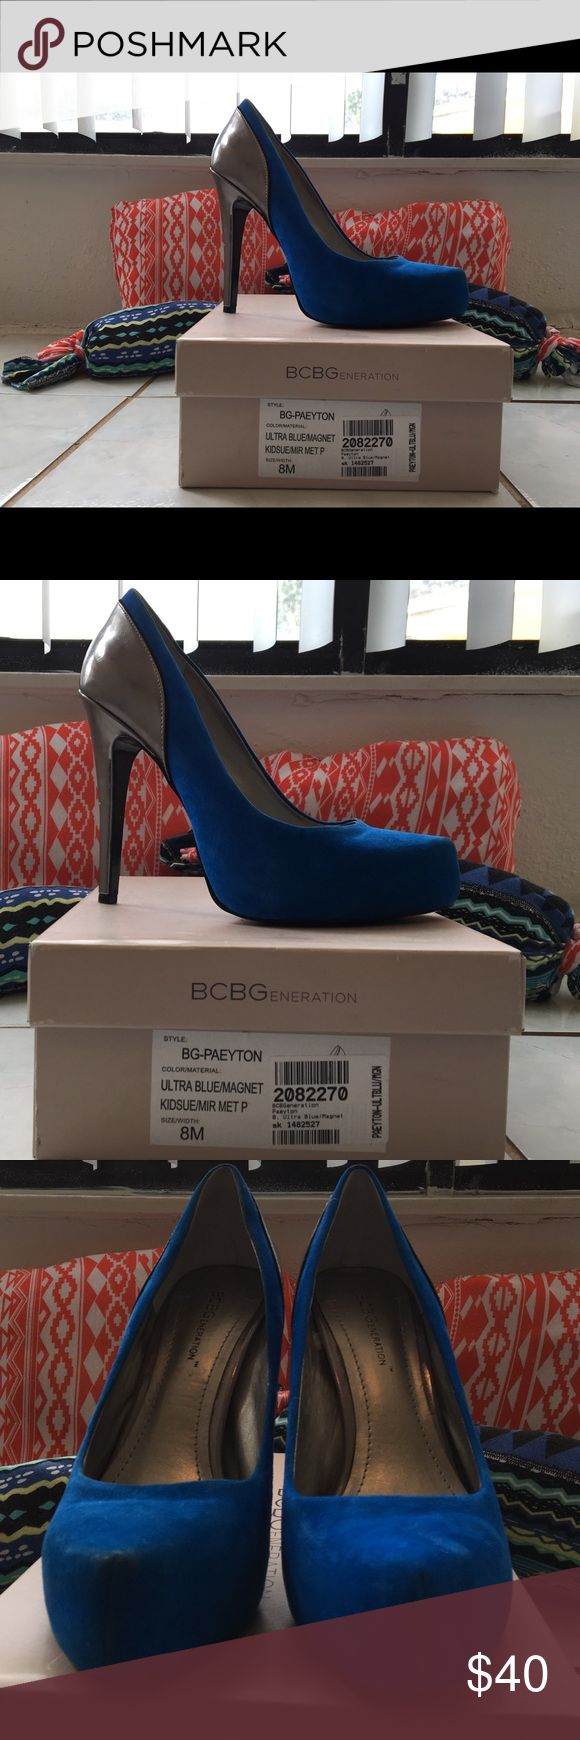 BCBGeneration Style:BG-PAEYTON Ultra Blue/Magnet Pump  Selling because my wife can't wear heals anymore due to two knee surgeries. No trades please. BCBGeneration Shoes Heels